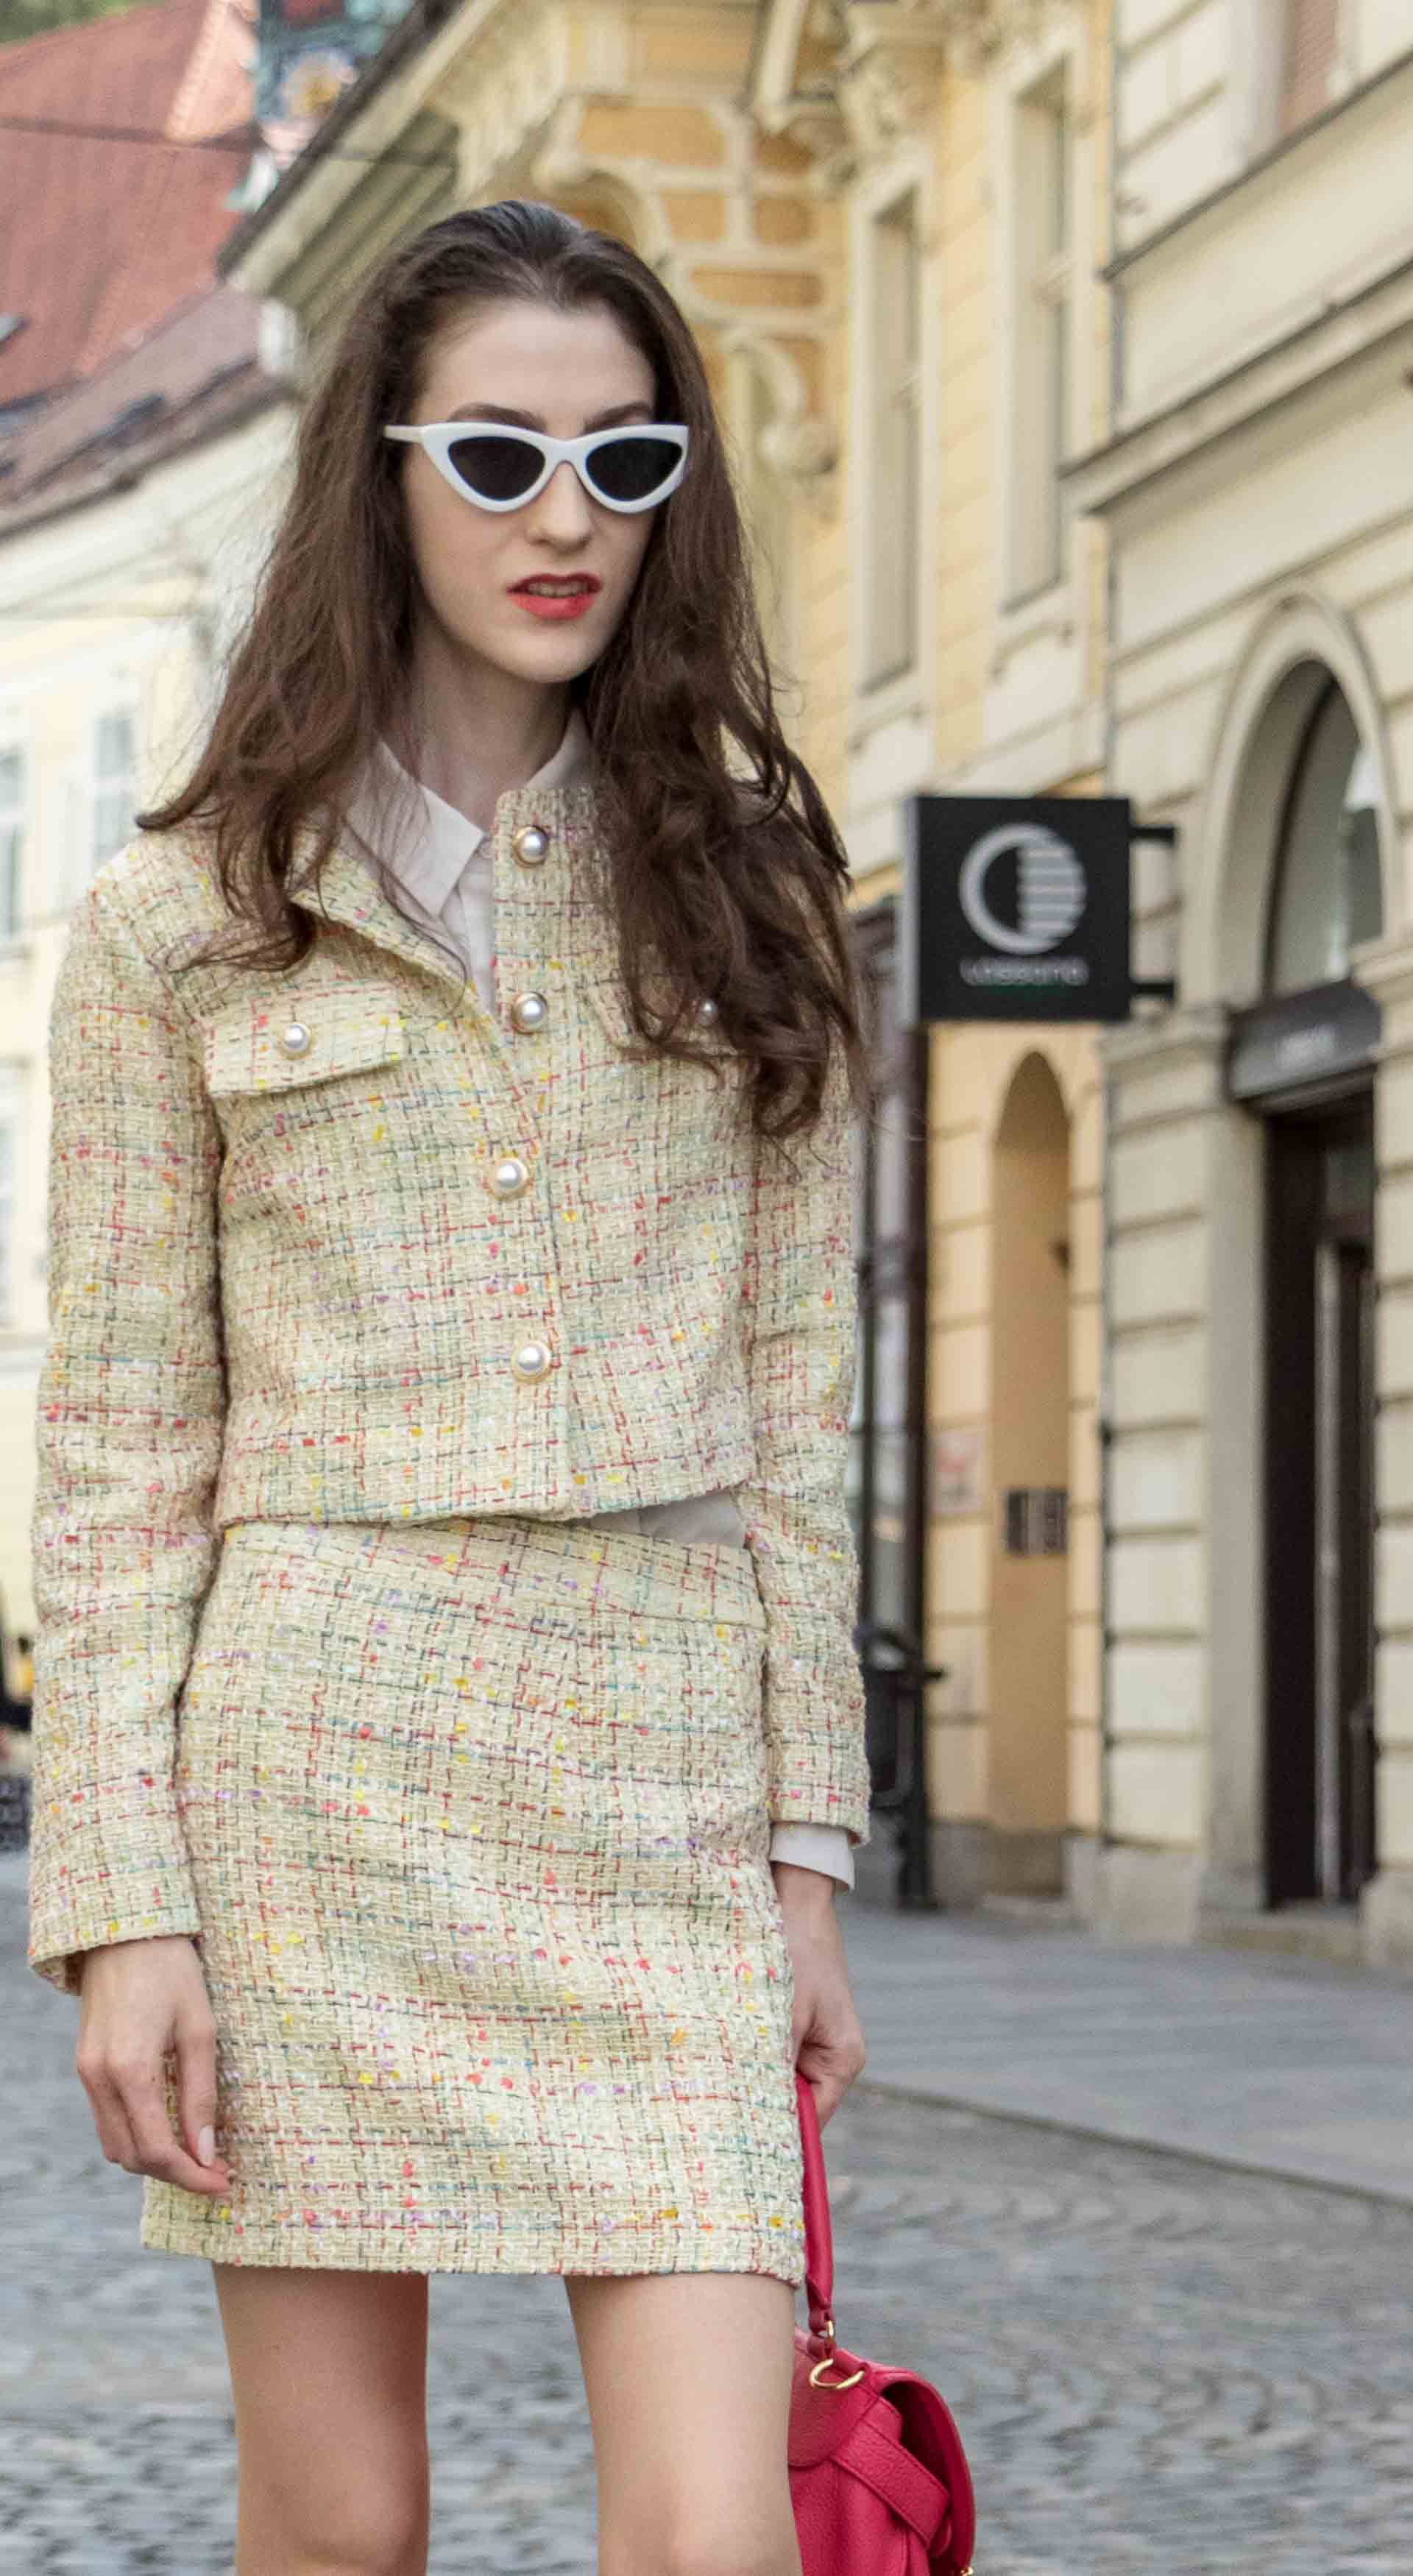 Fashion Blogger Veronika Lipar of Brunette from Wall Street wearing Storets yellow tweed mini skirt suit, See by Chloe pink top handle bag, Adam Selman x Lespecs white Lolita sunglasses for spring brunch